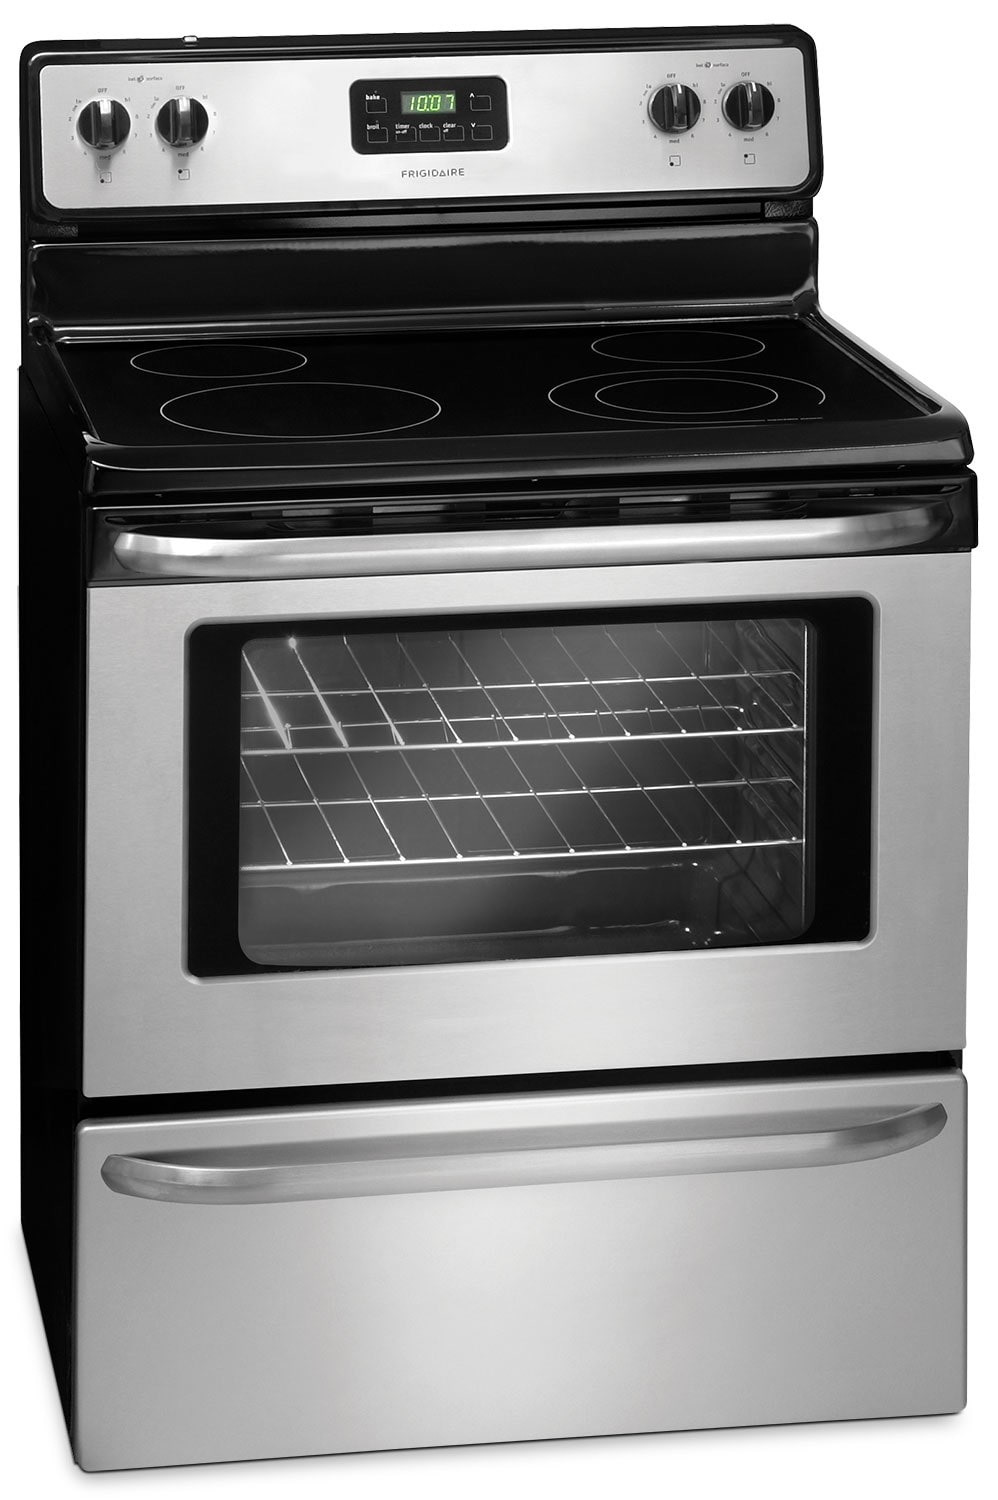 Cooking Products - Frigidaire 4.8 Cu. Ft. Free-Standing Electric Range - Stainless Steel